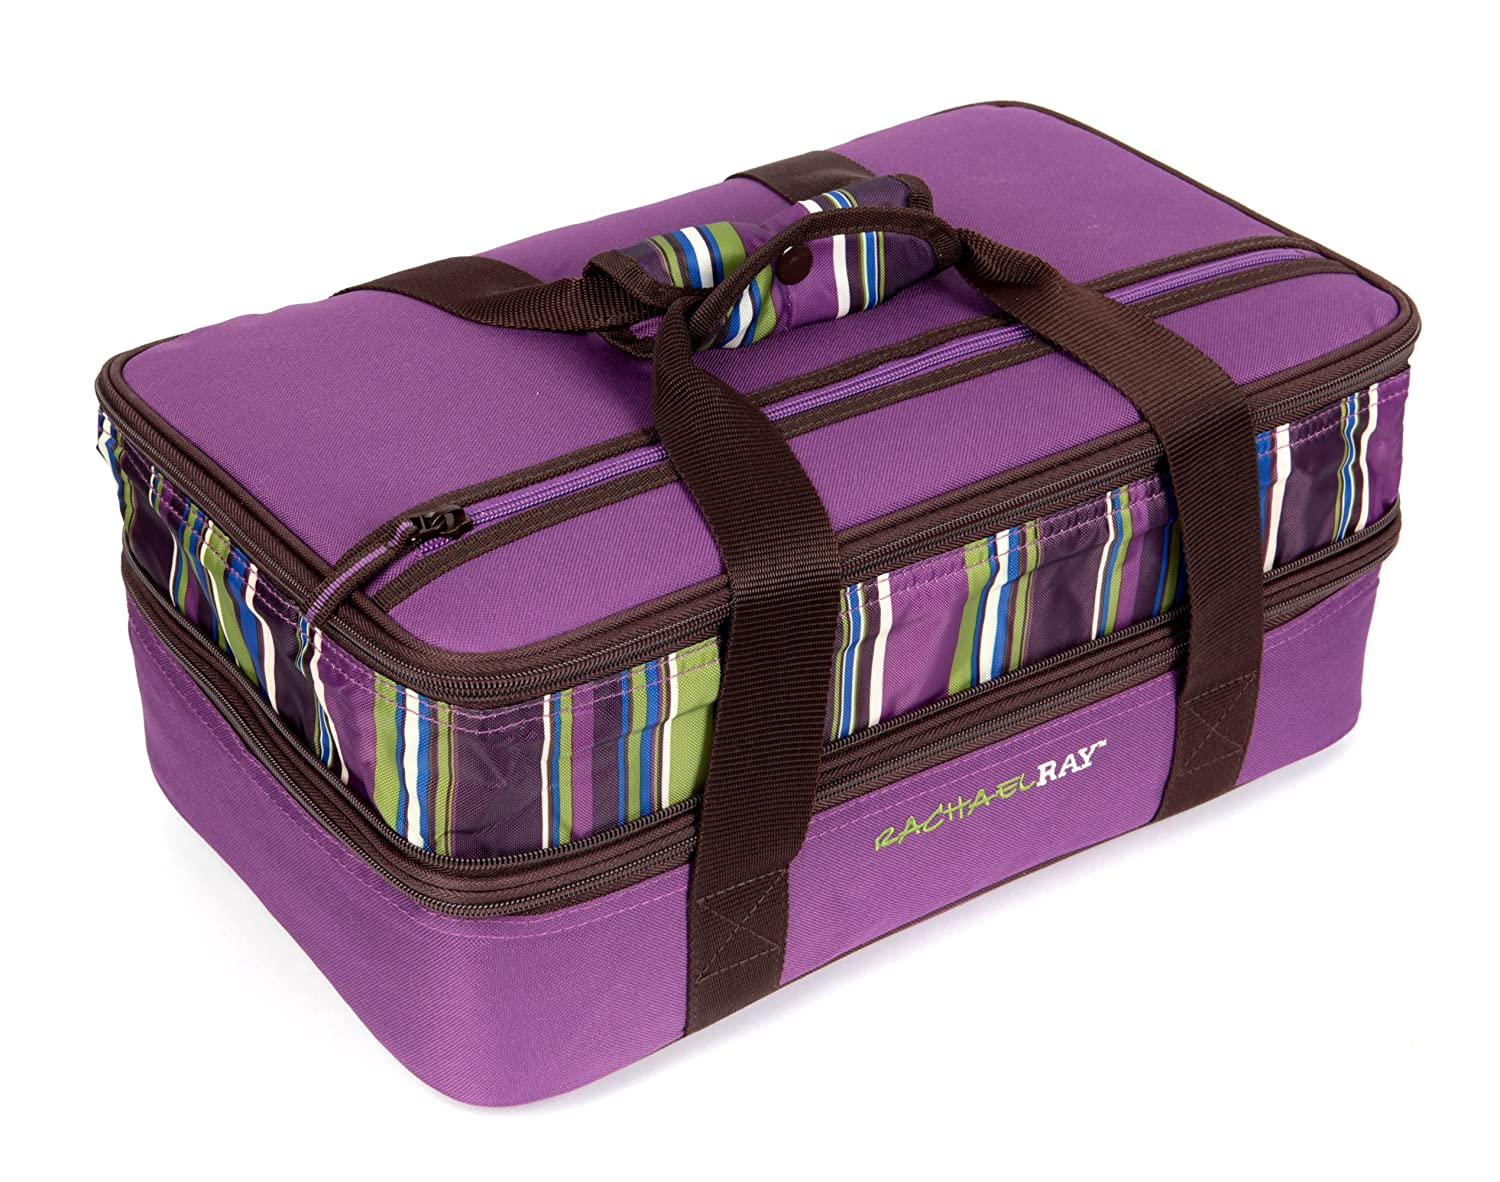 """Rachael Ray Expandable Lasagna Lugger, Double Casserole Carrier for Potluck Parties, Picnics, Tailgates - Fits two 9""""x13"""" Casserole Dishes, Purple"""